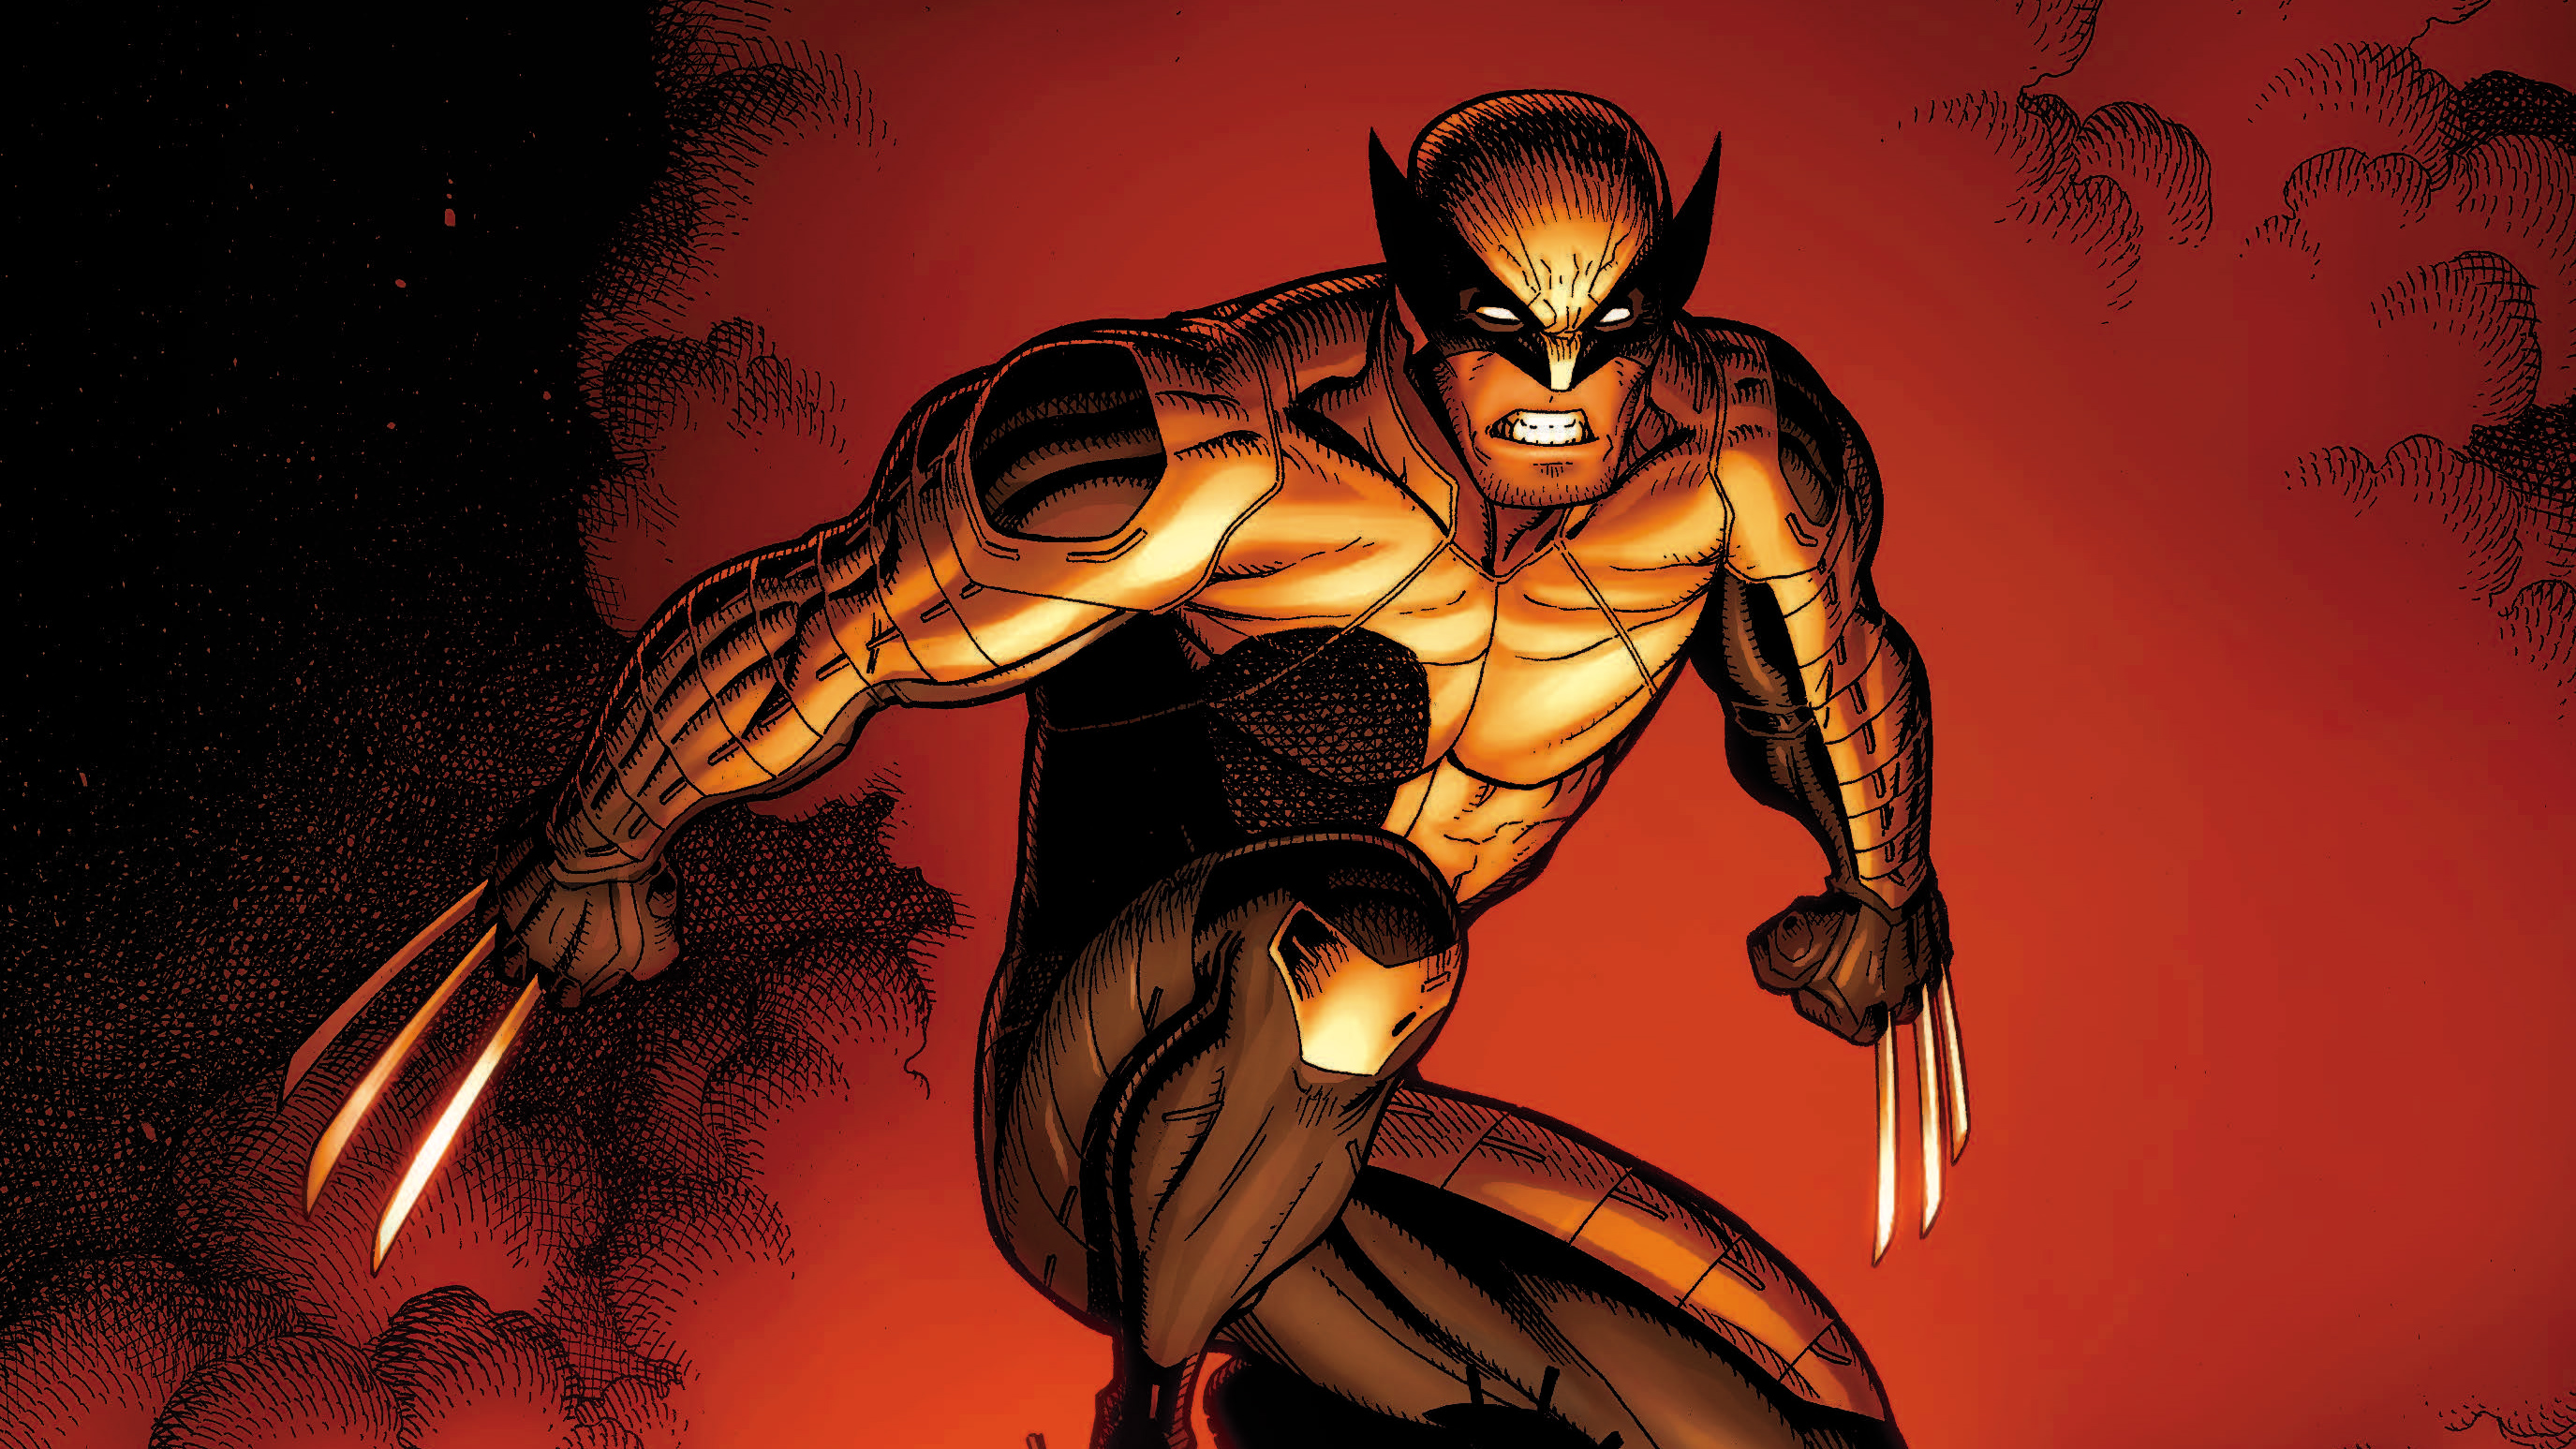 Wolverine artworks hd superheroes 4k wallpapers images backgrounds photos and pictures - Wallpaper wolverine 4k ...